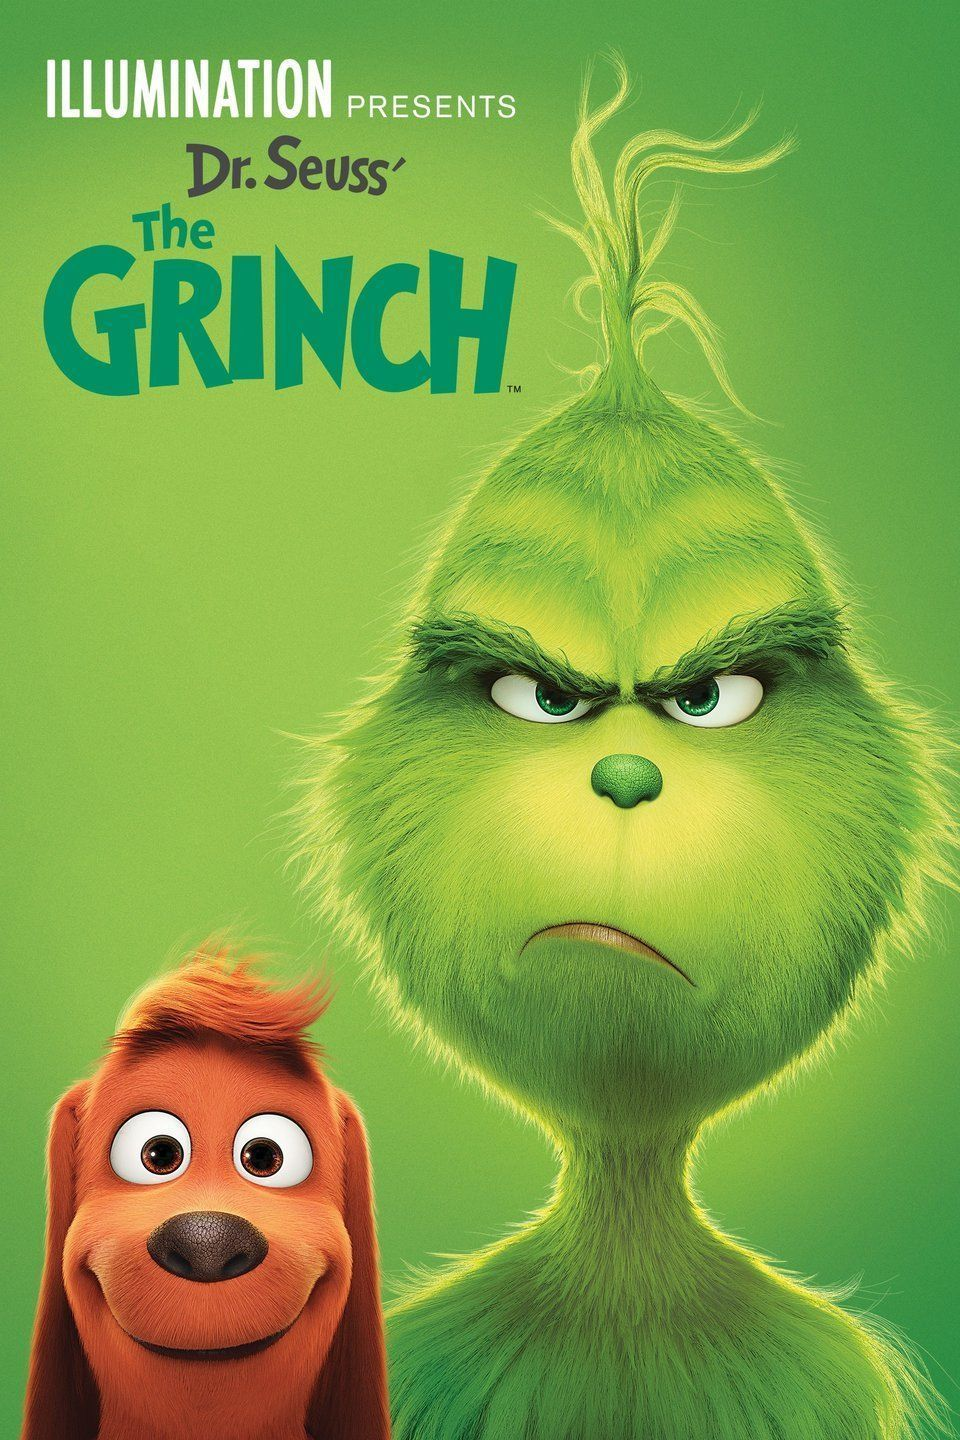 These Christmas Movies For Kids On Netflix Will Make It Easier To Be Stuck Inside The Grinch Movie The Grinch Full Movie Grinch